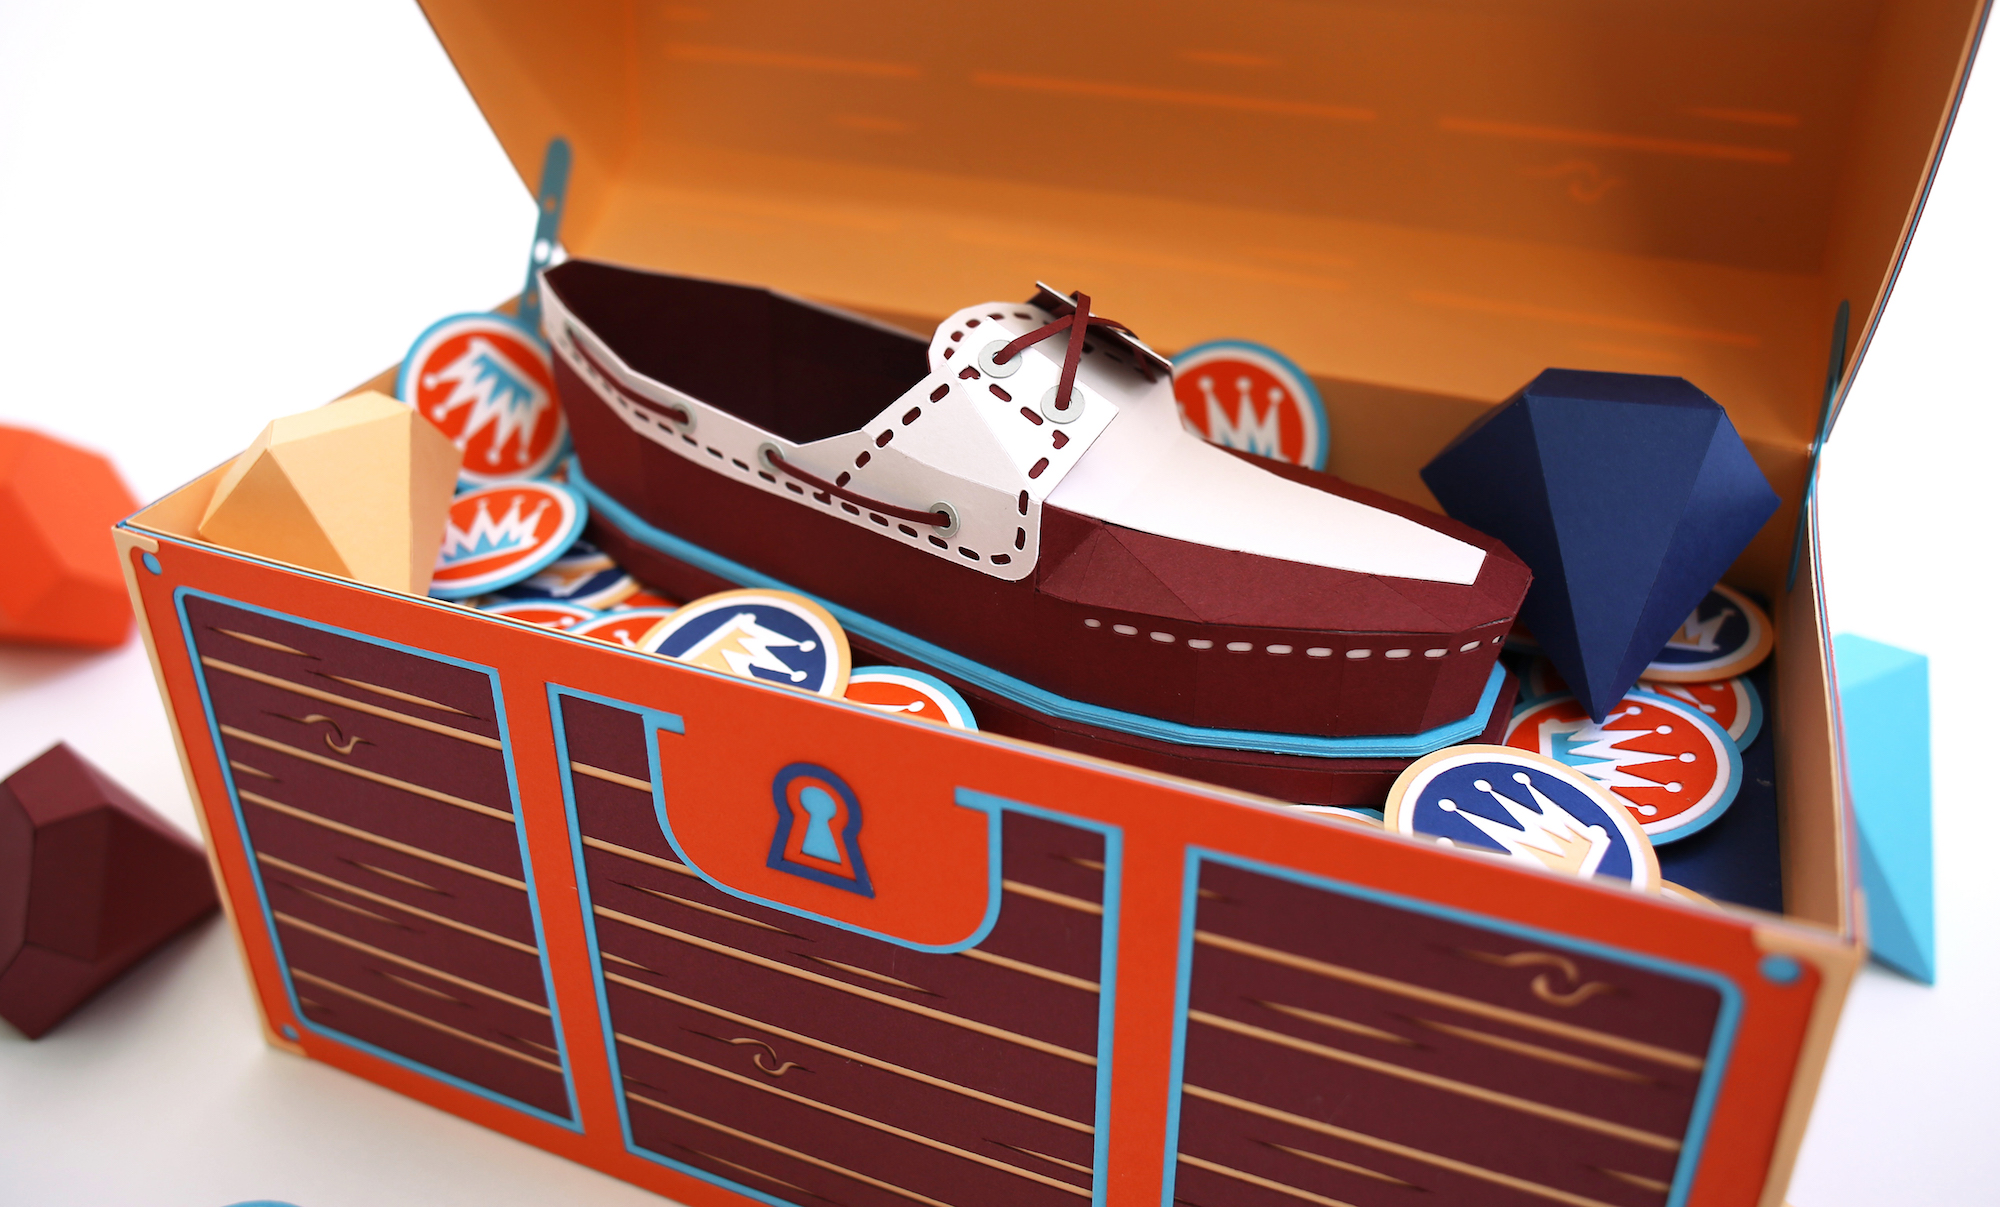 L'artwork in paper art di Zim & Zou per Timberland Boat Shoe | Collater.al